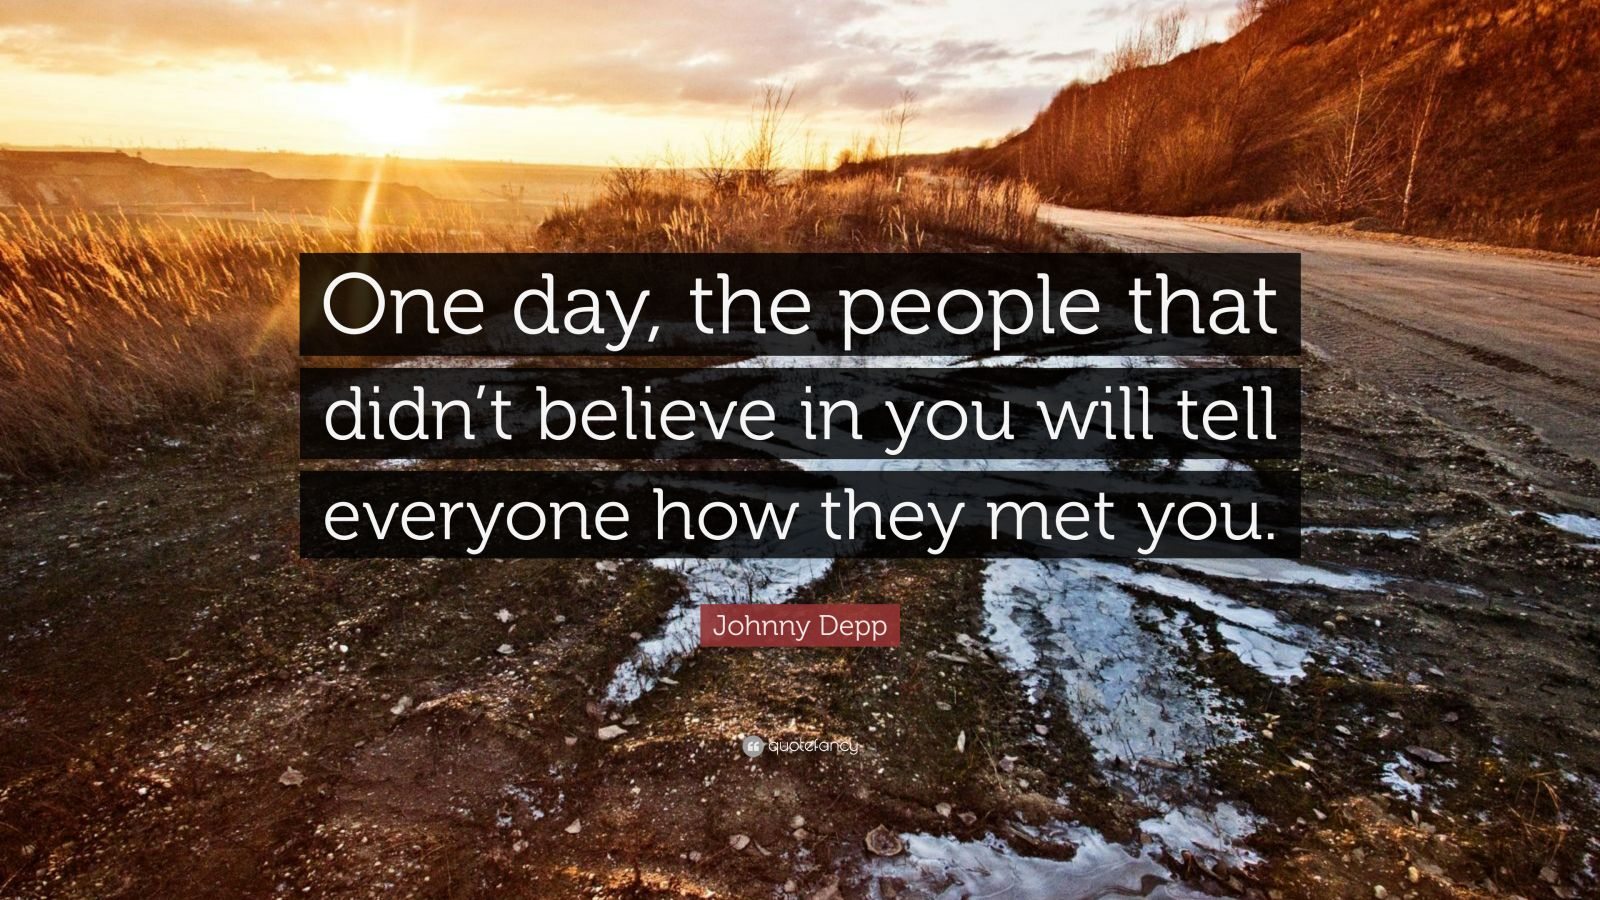 it is certainly true that people